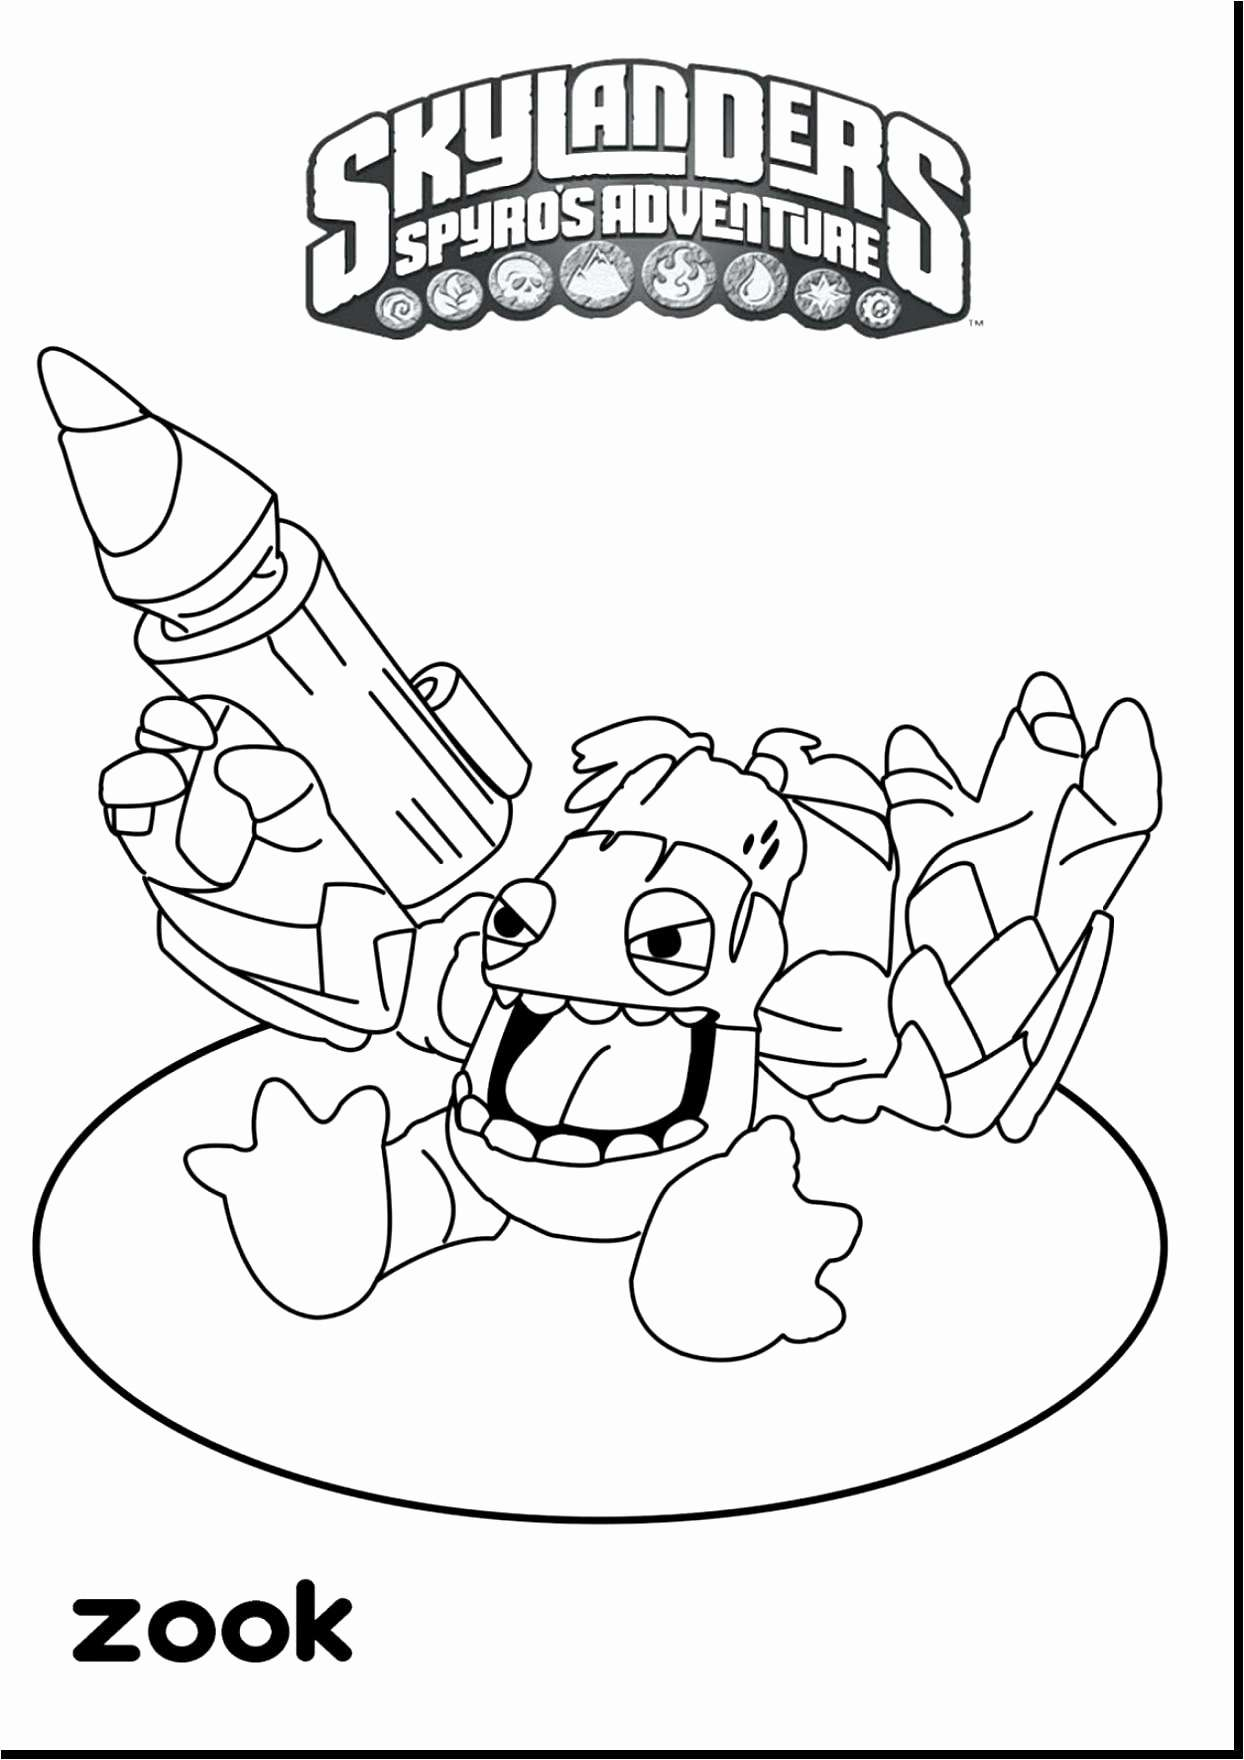 catcher coloring pages Collection-Christmas Coloring Pages Free Printables 2-q